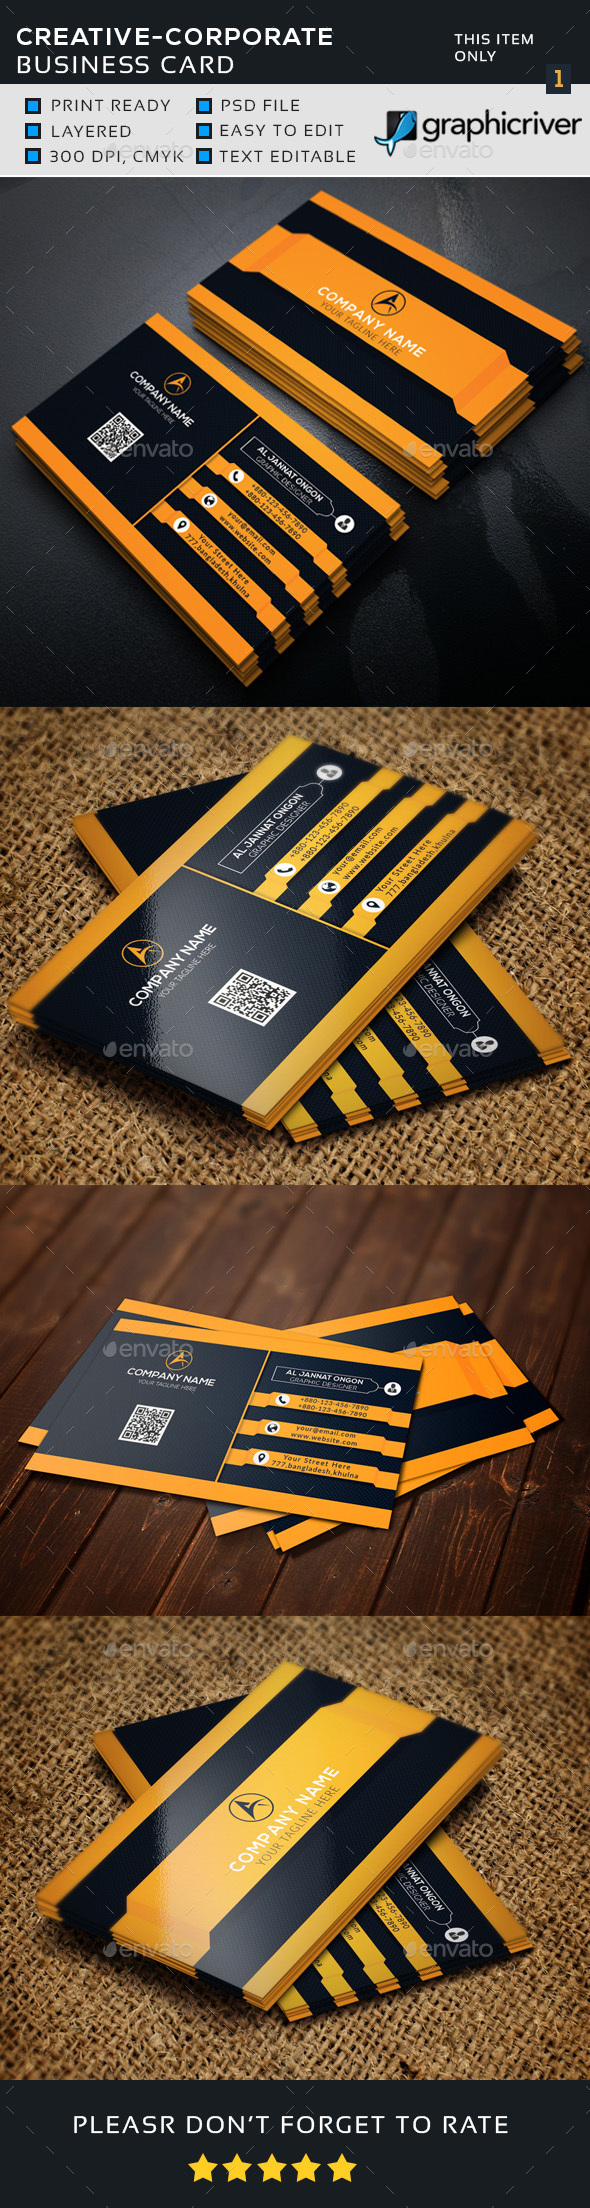 3D Corporate Business Card - Business Cards Print Templates